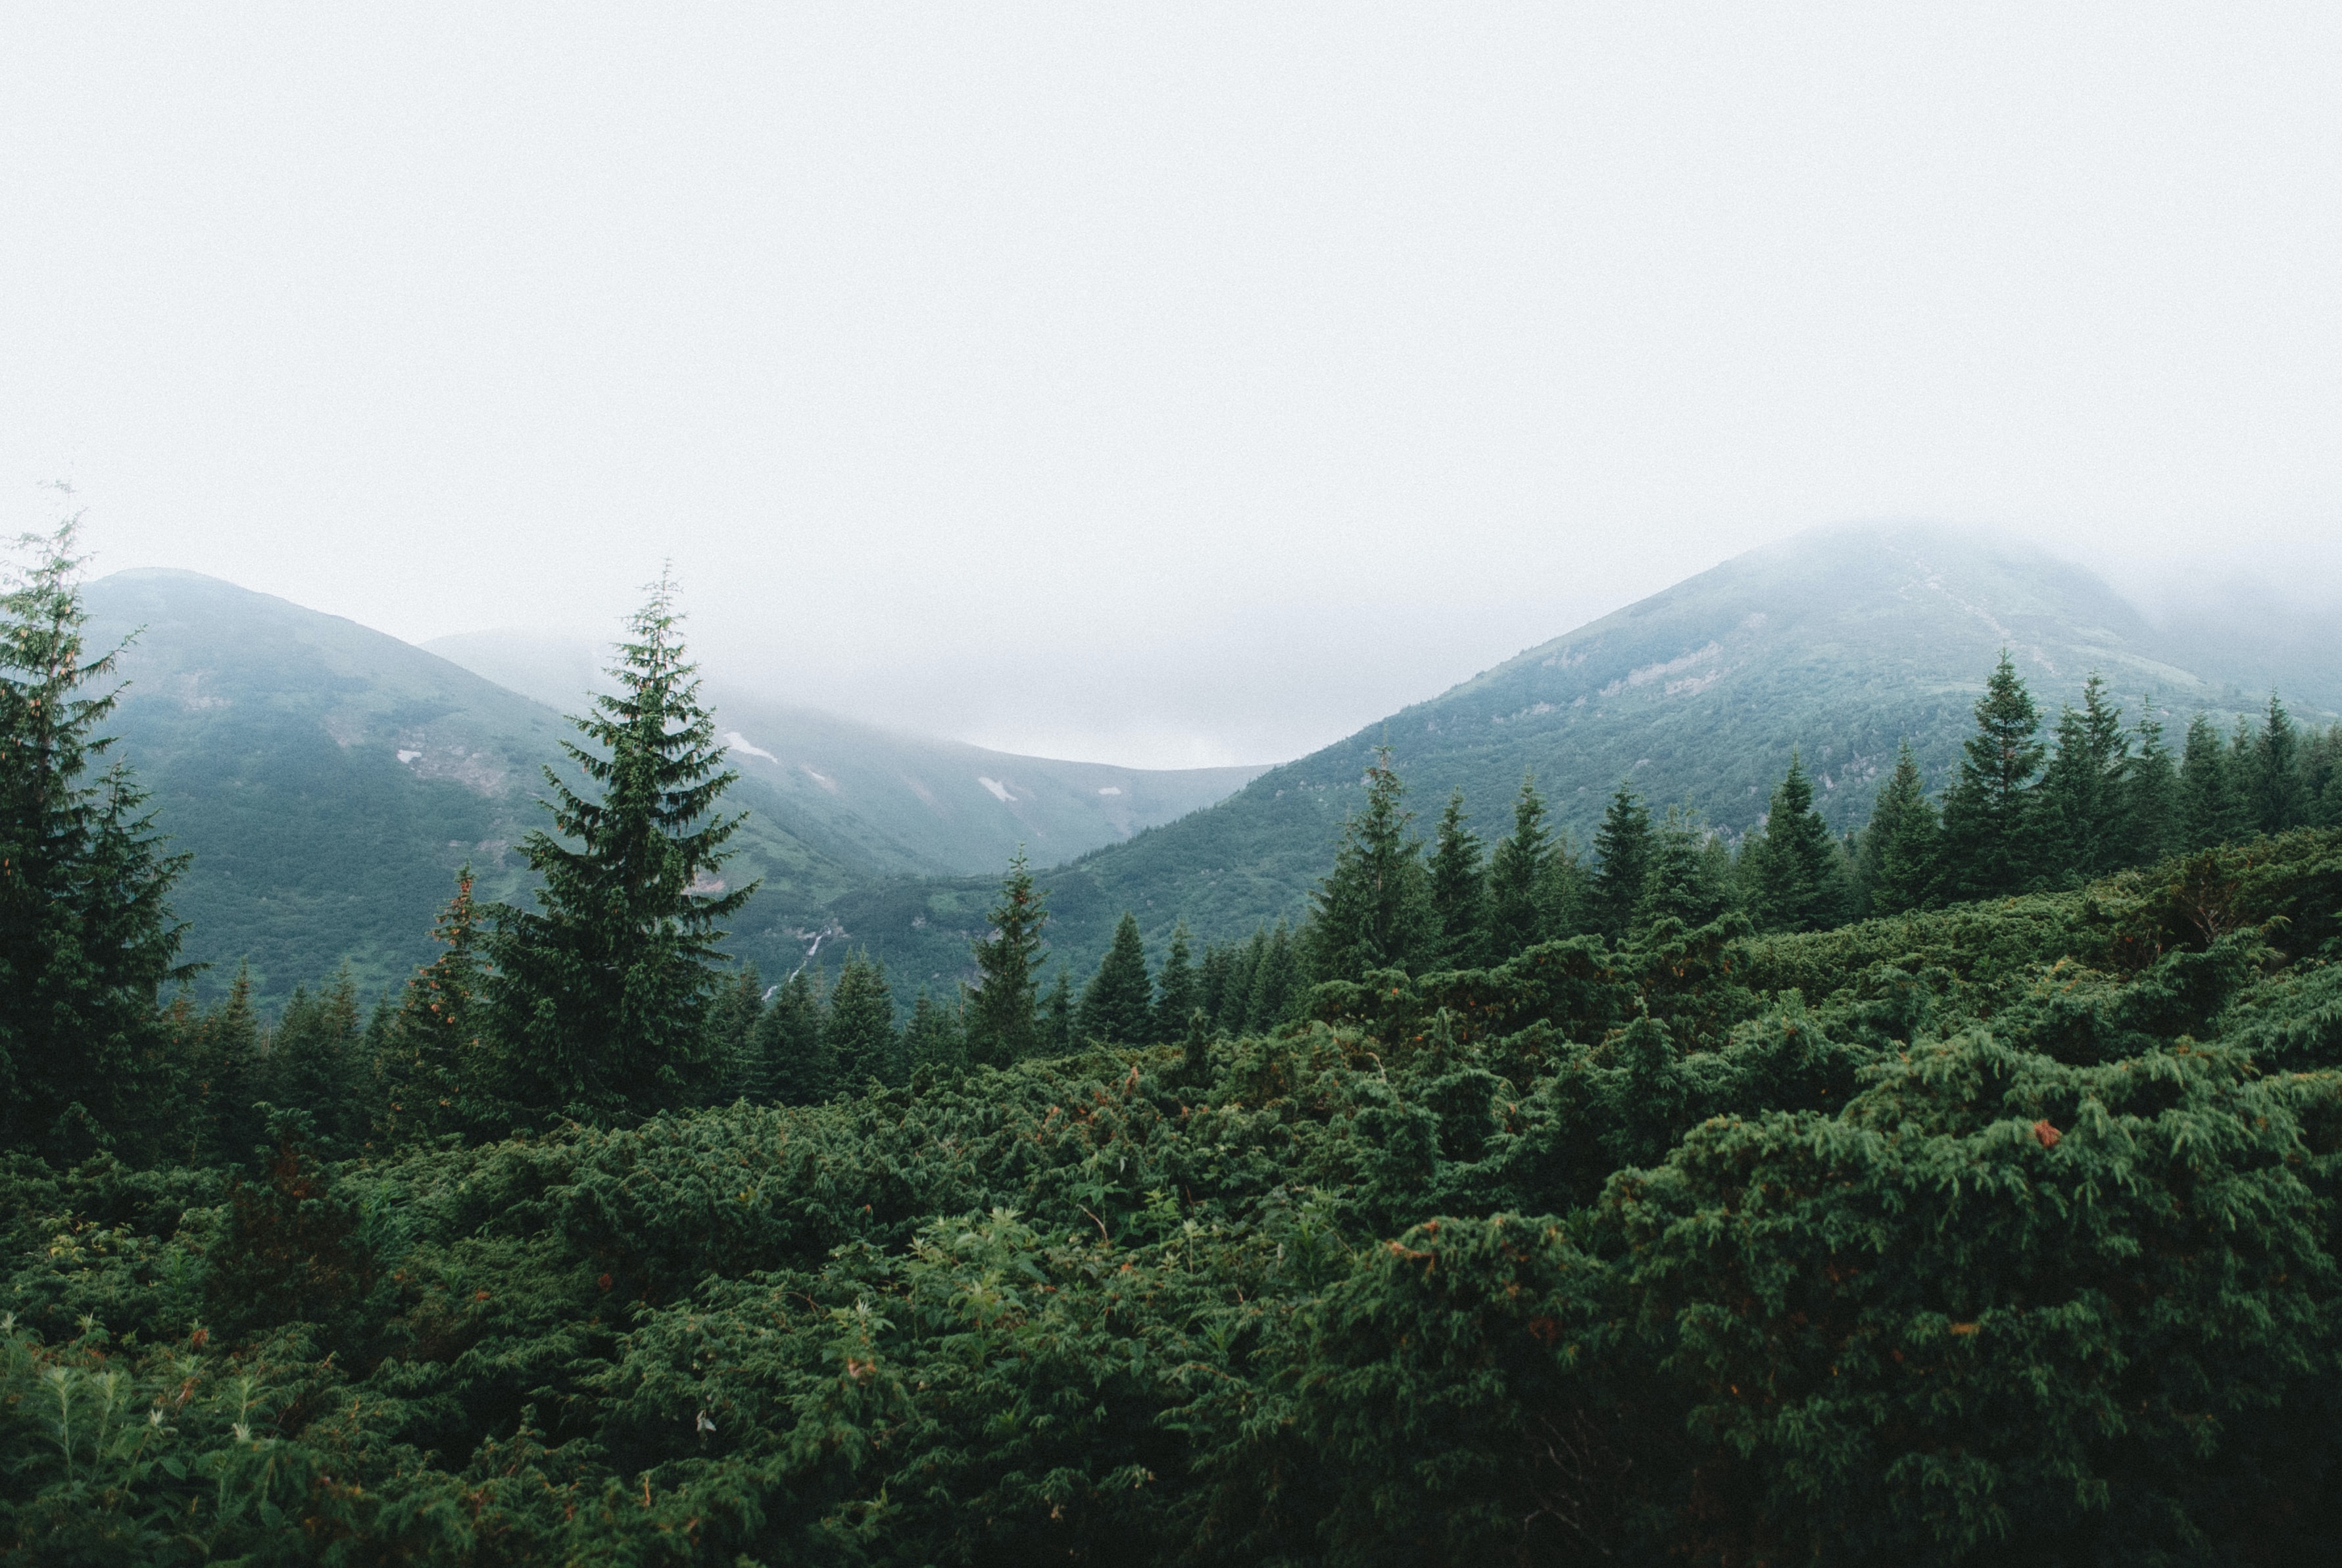 landscape photography of green trees and mountains